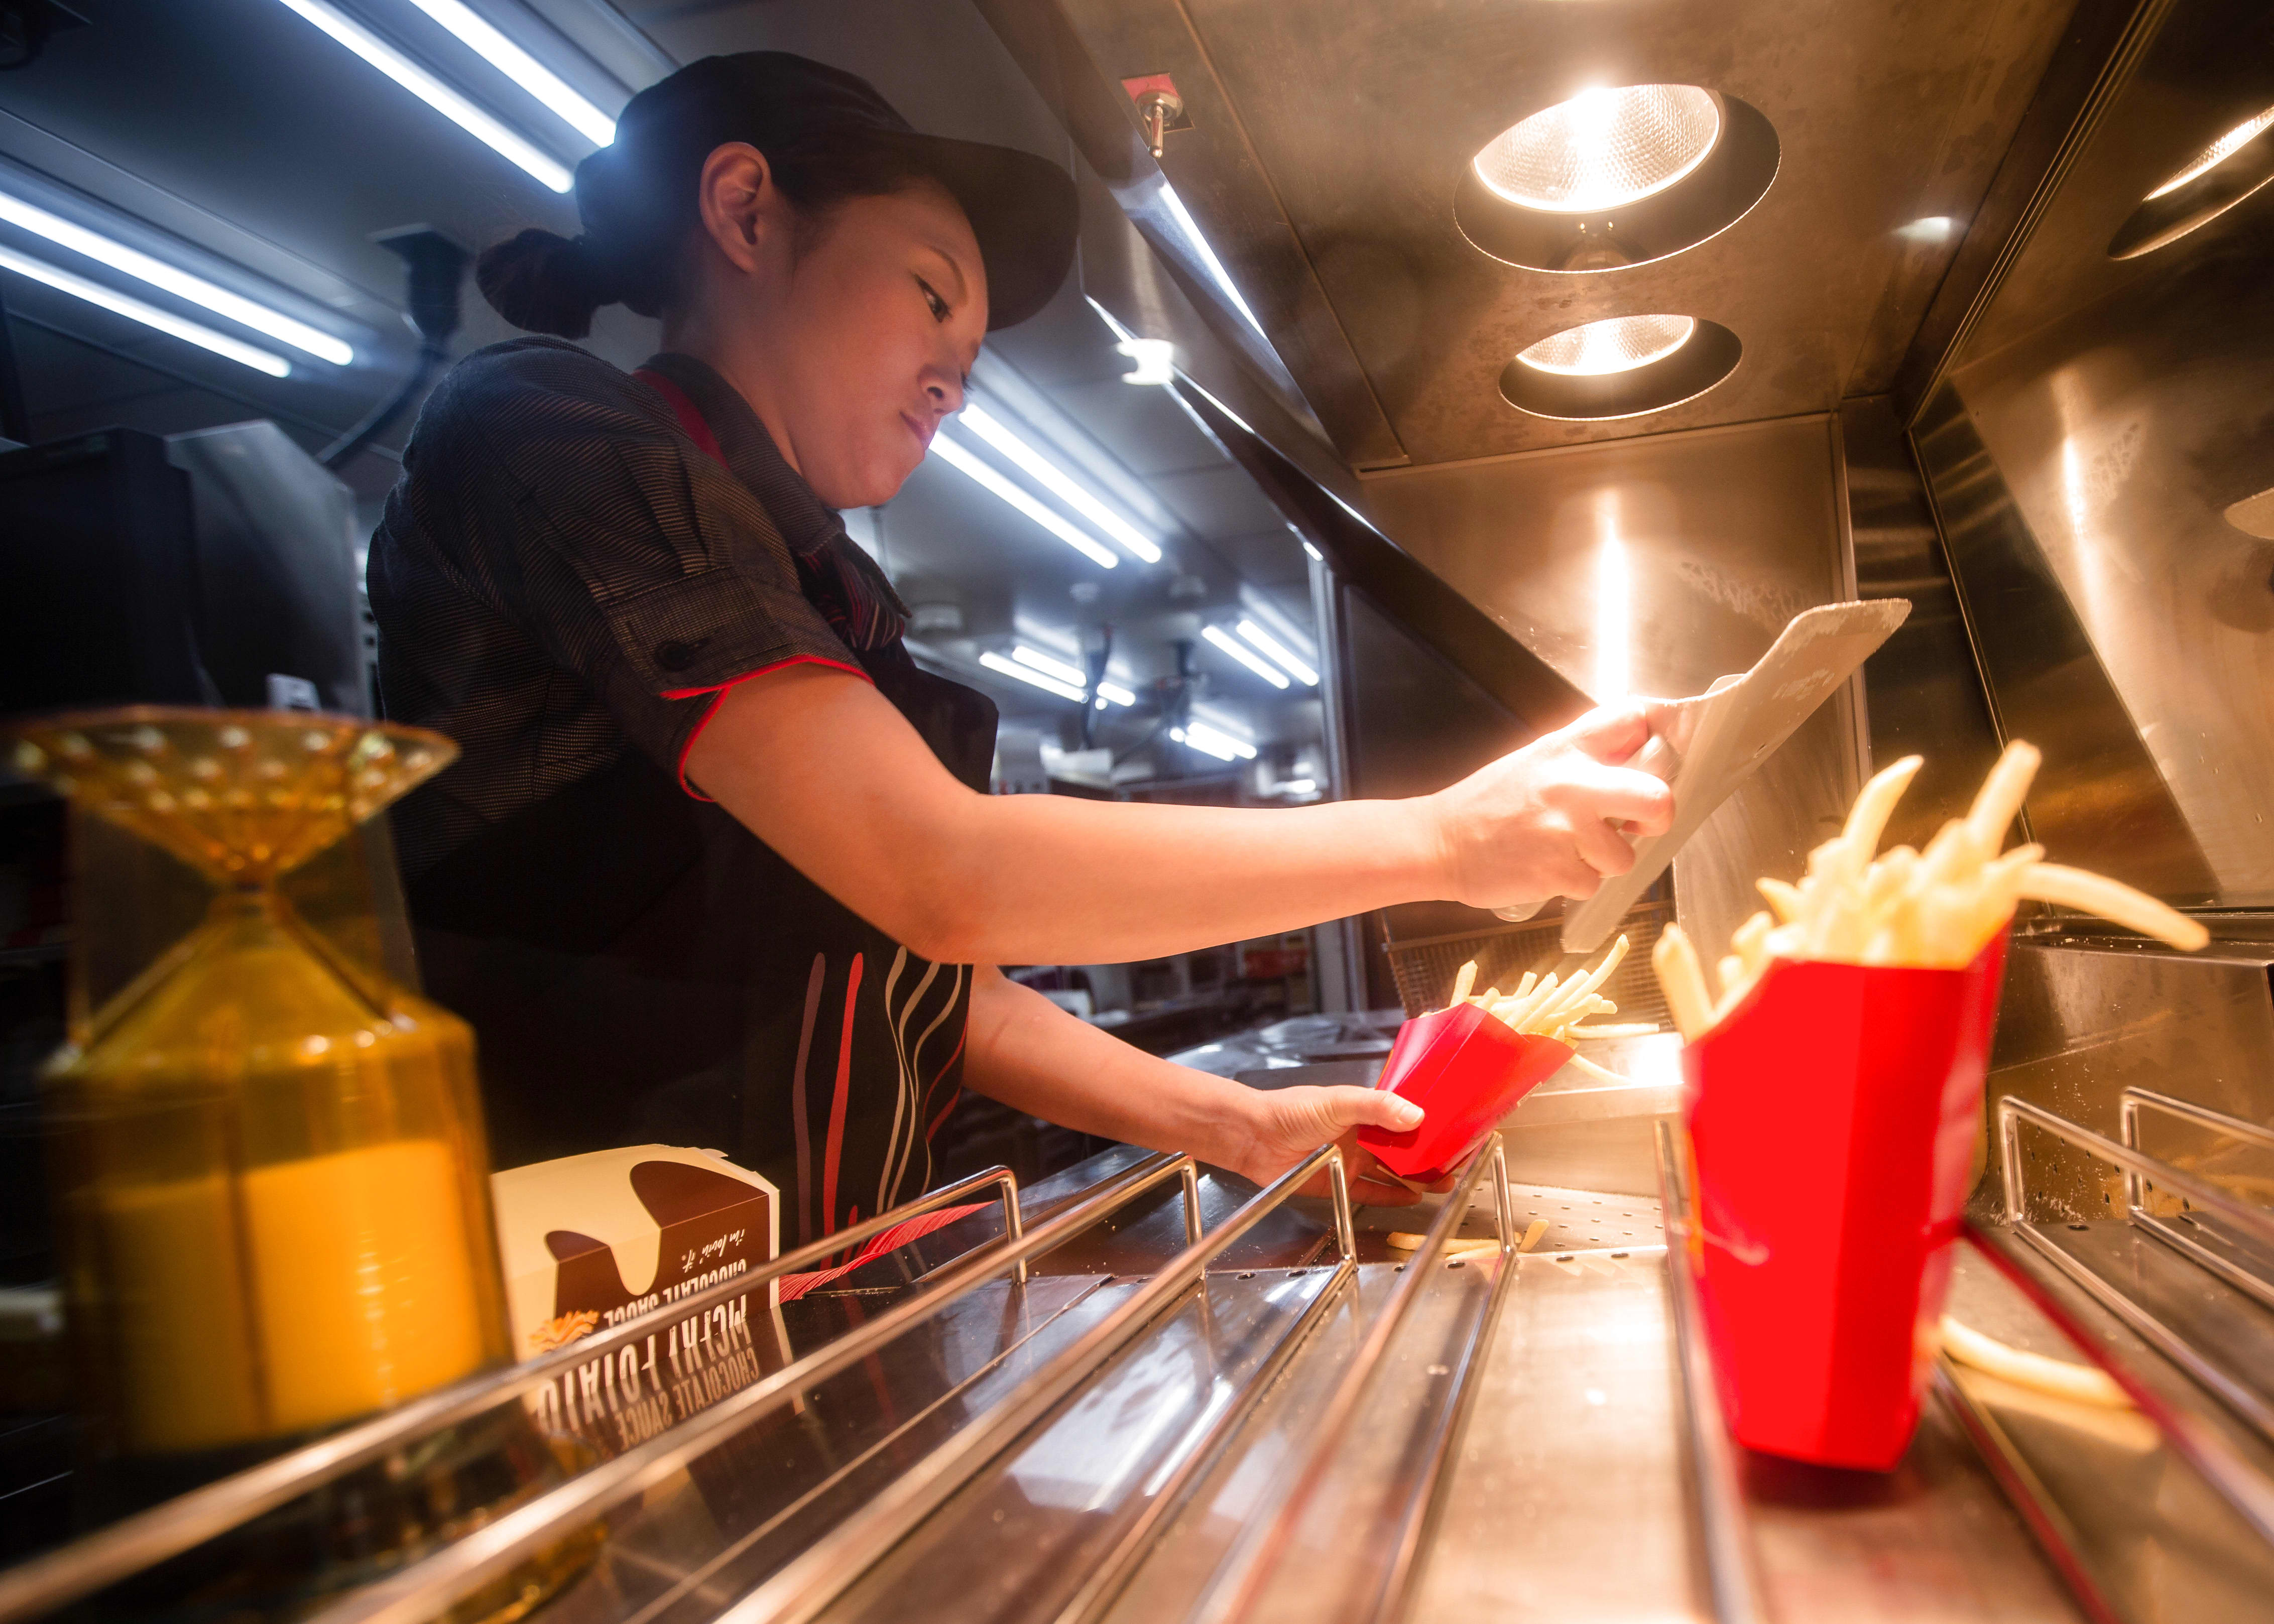 McDonald's worker prepares french fries to go.